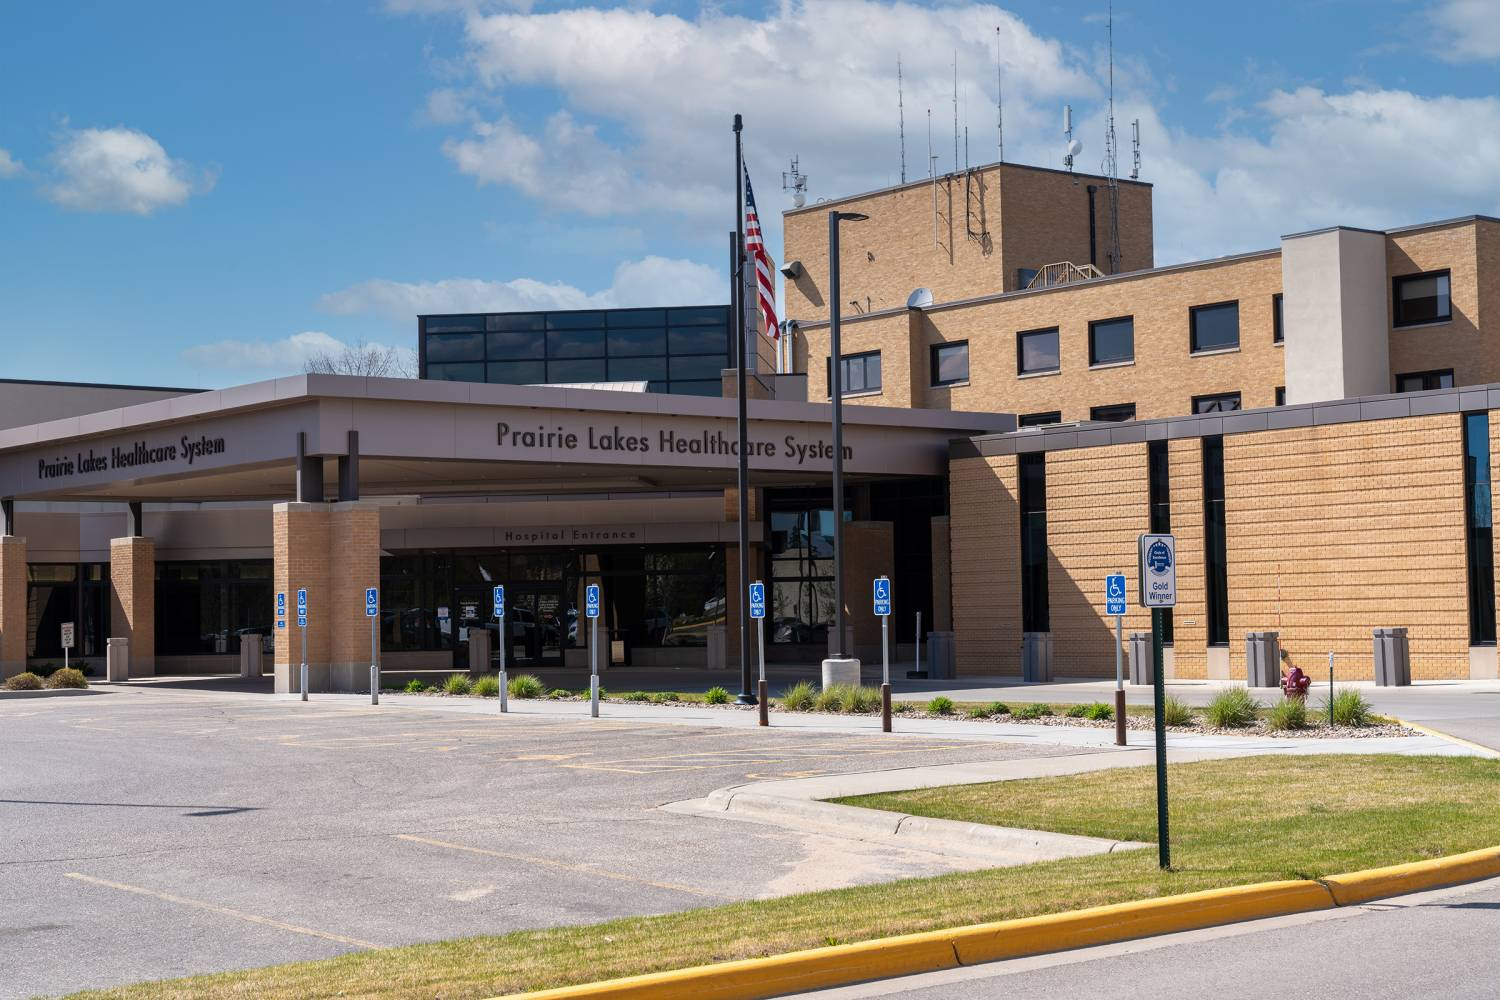 Prairie Lakes Featured Medical Services